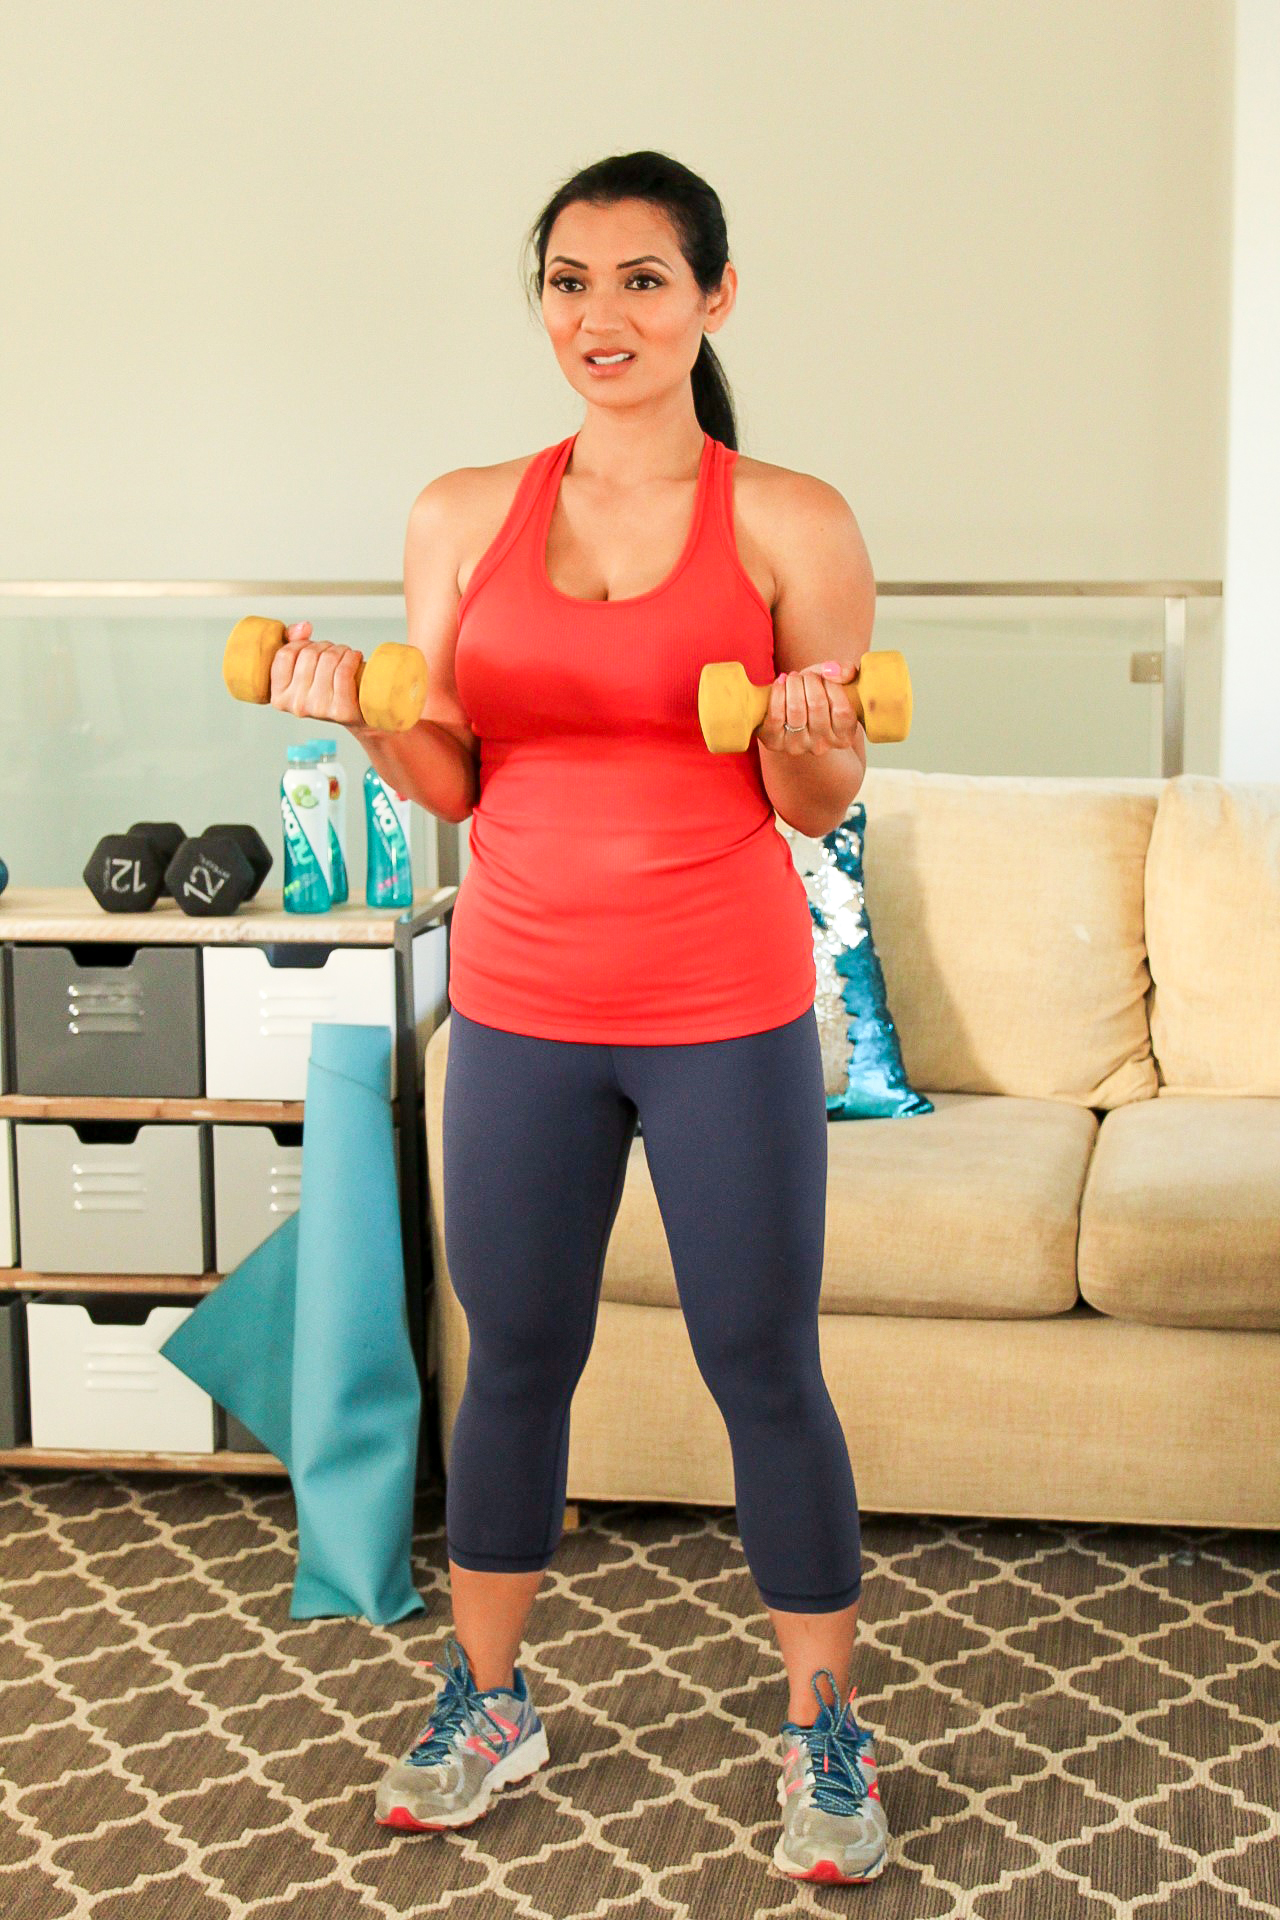 5 Reasons Why Women Should Weight Train by popular lifestyle blogger To Thine Own Style Be True